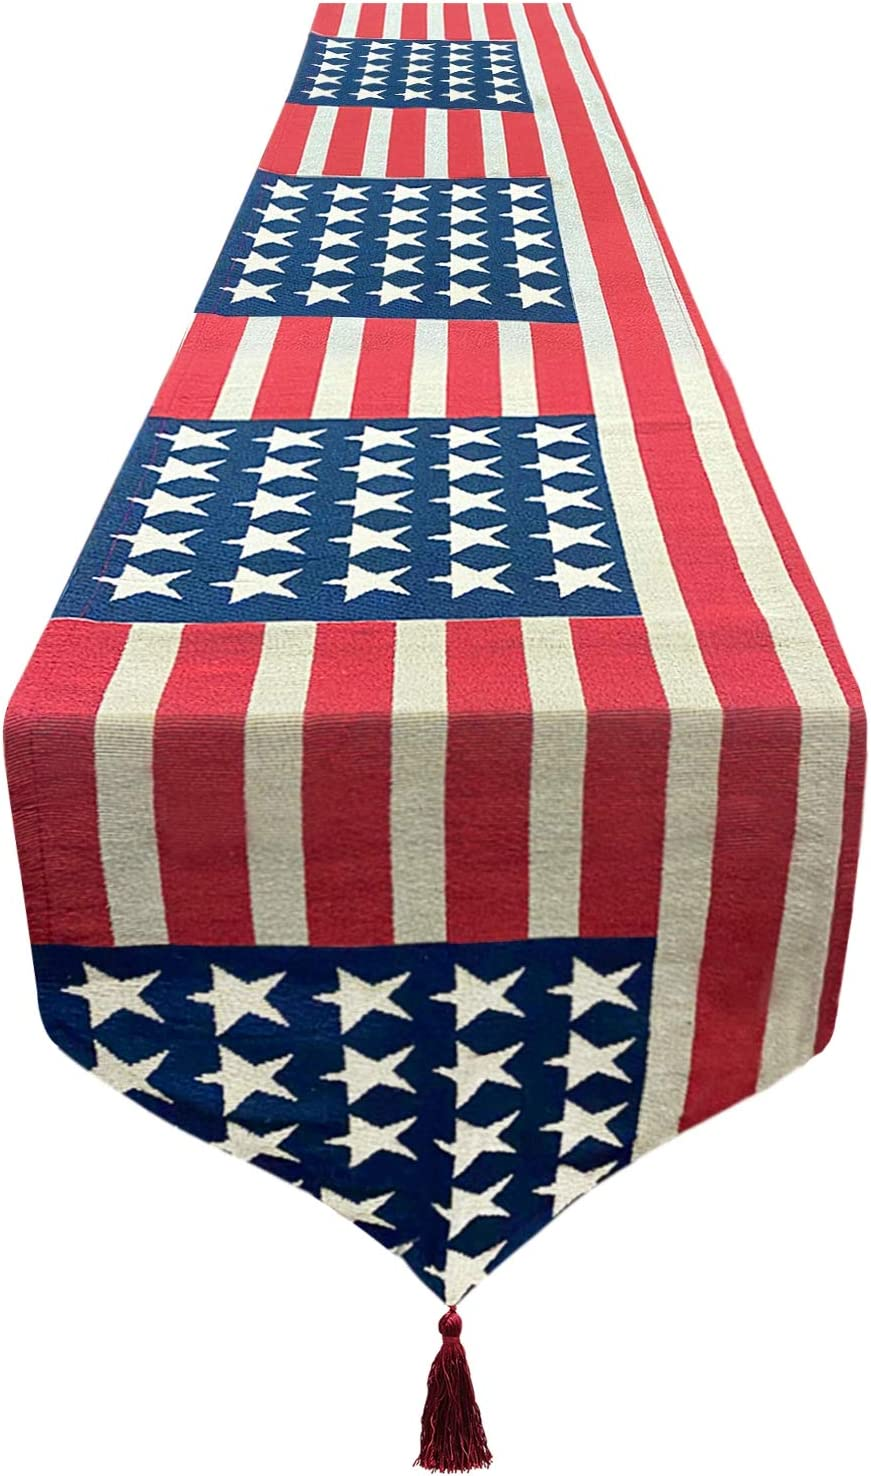 AMENON American Flag Table Runner 13x70 Inch Embroidered Americans Flag Stars Runner for August Wedding, Election Event Decoration Burlap Table RunnerTable Cover Patriotic Decor